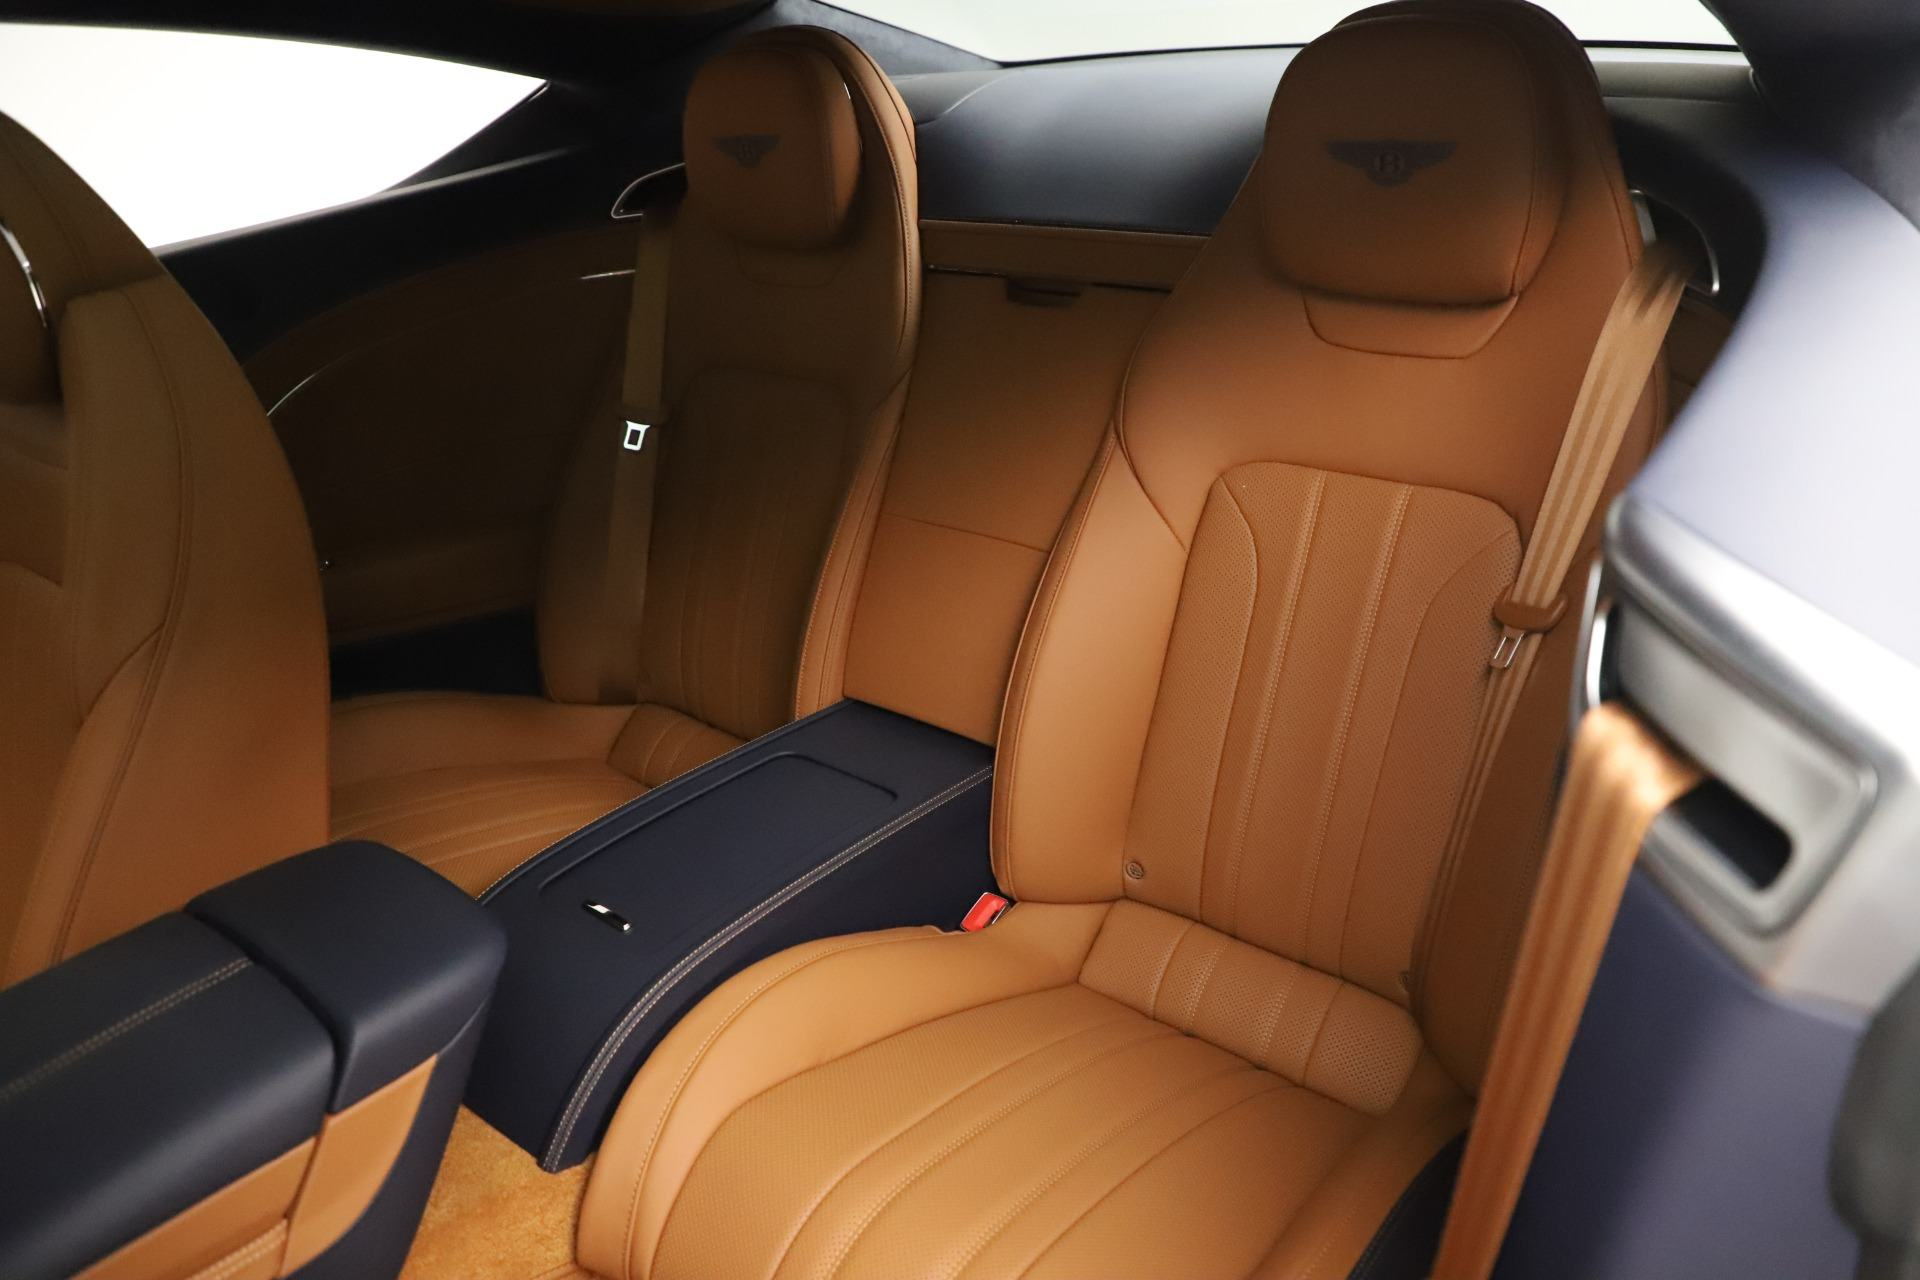 Bentley-Continental-GT-W12-Coupe-2020-2021-Muaxegiatot-vn-8